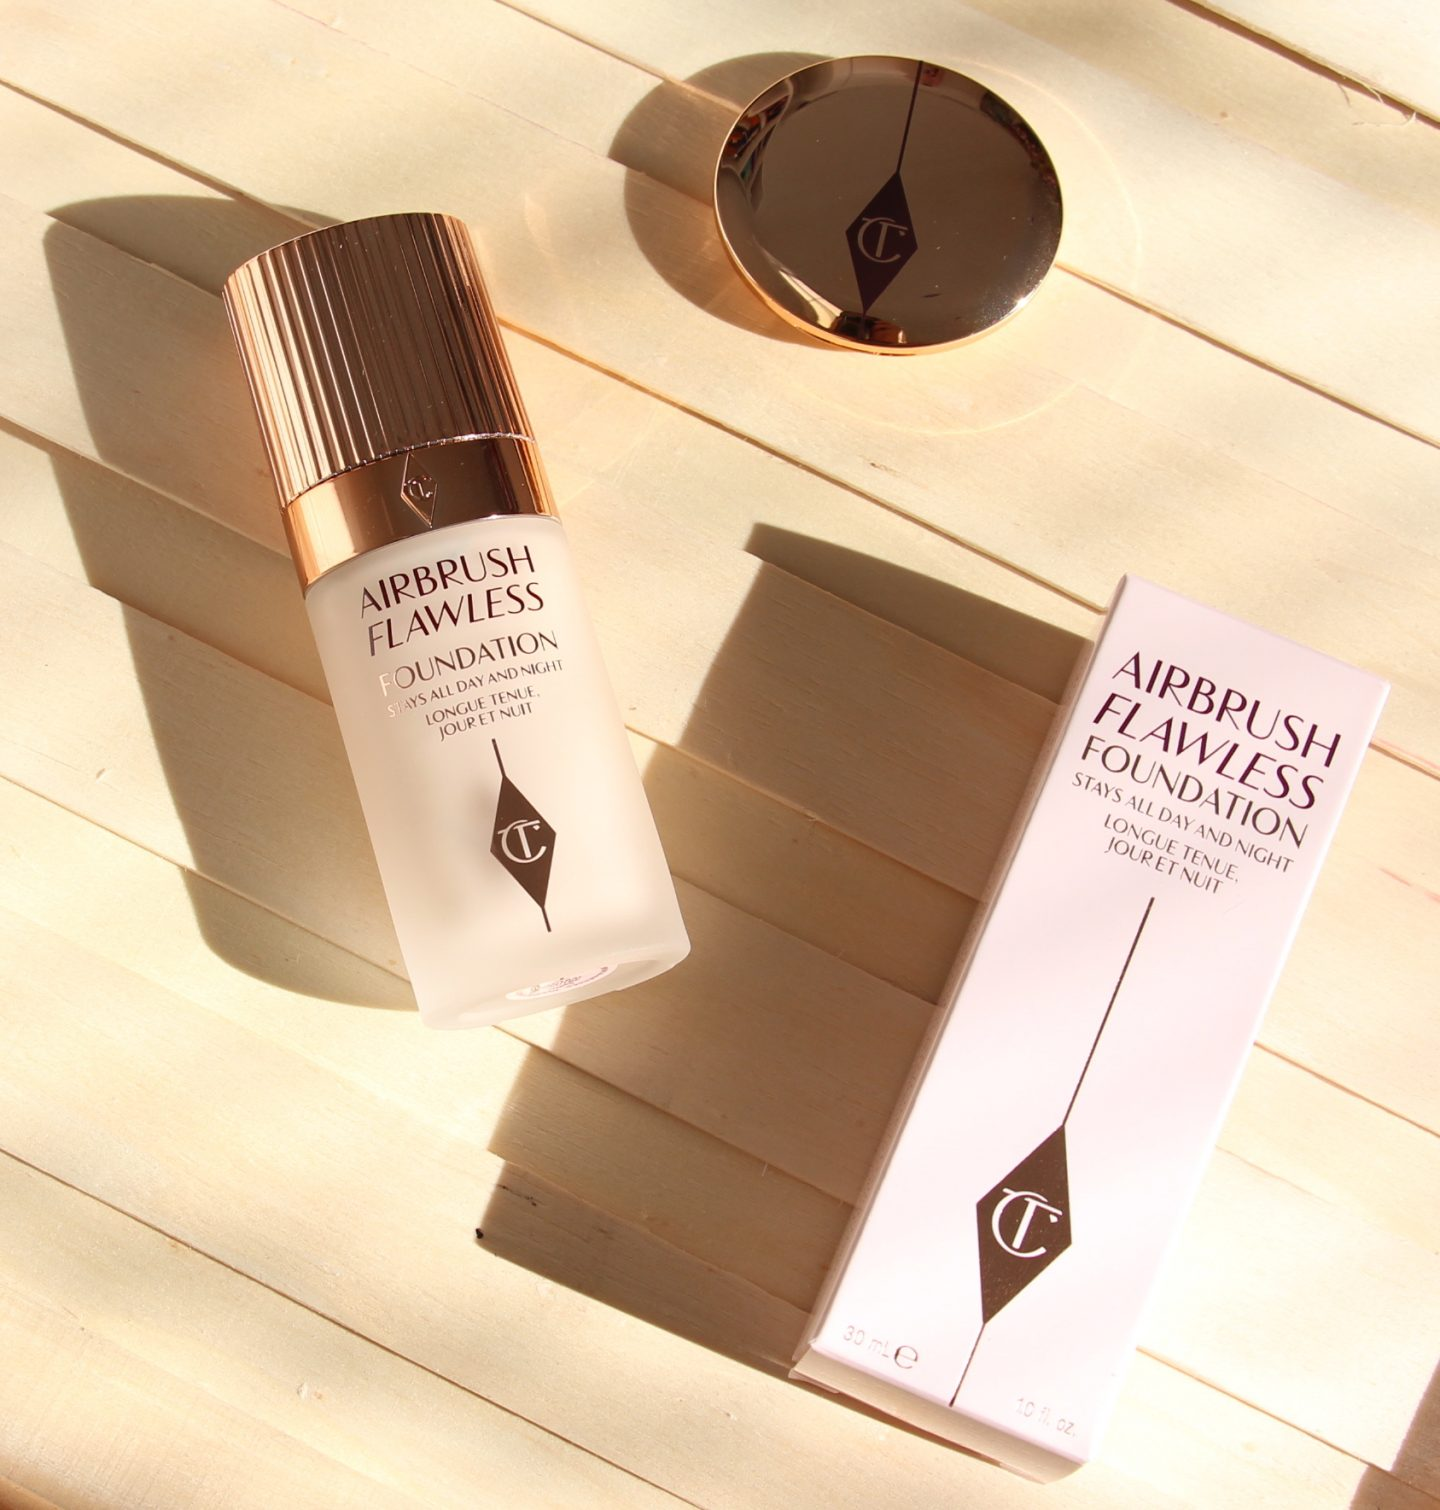 Charlotte Tilbury Airbrush Flawless Foundation and Magic Vanish